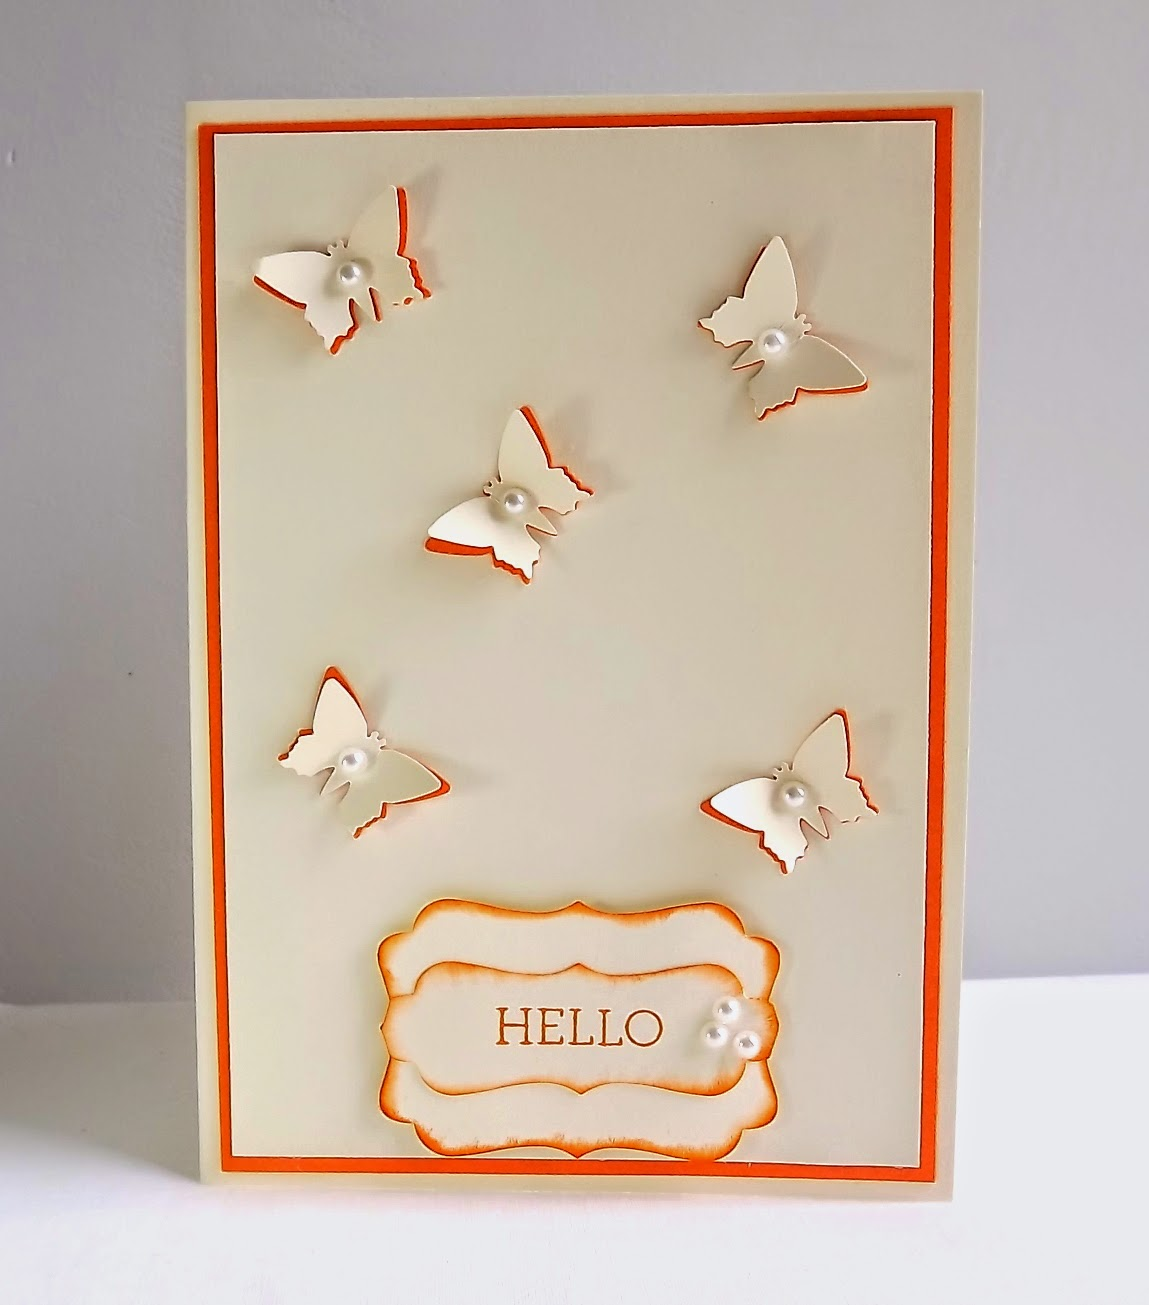 Stampin Up! butterfly card, Very Vanilla and Tangelo Twist